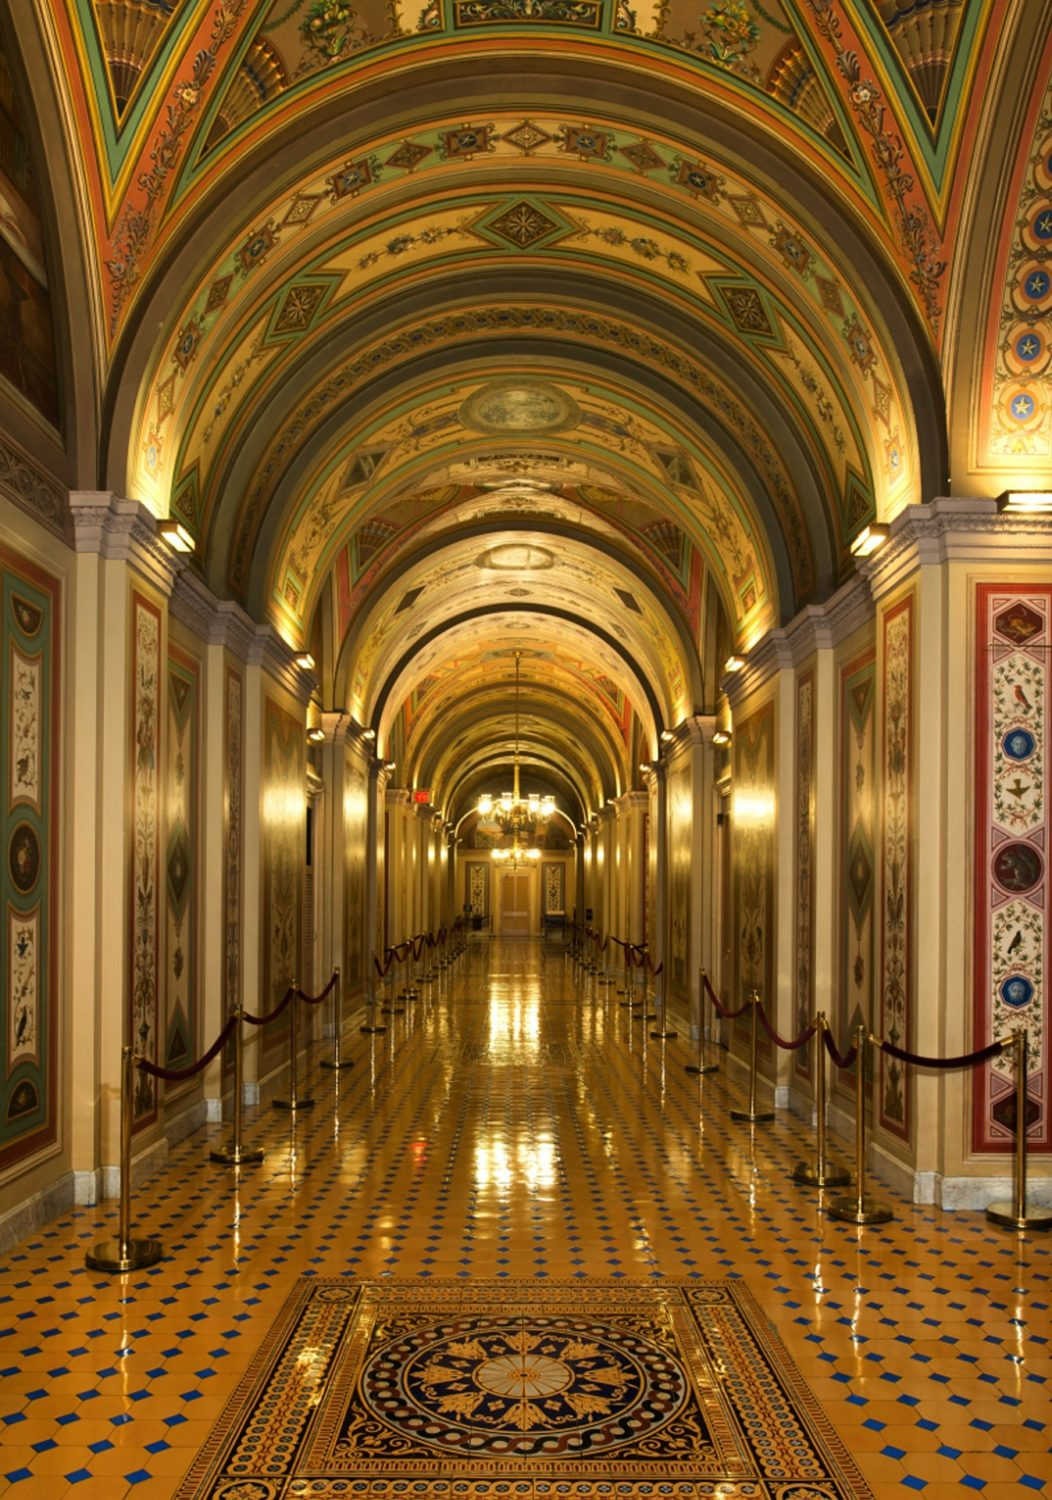 Inside the United States Capitol building, Washington, D.C.